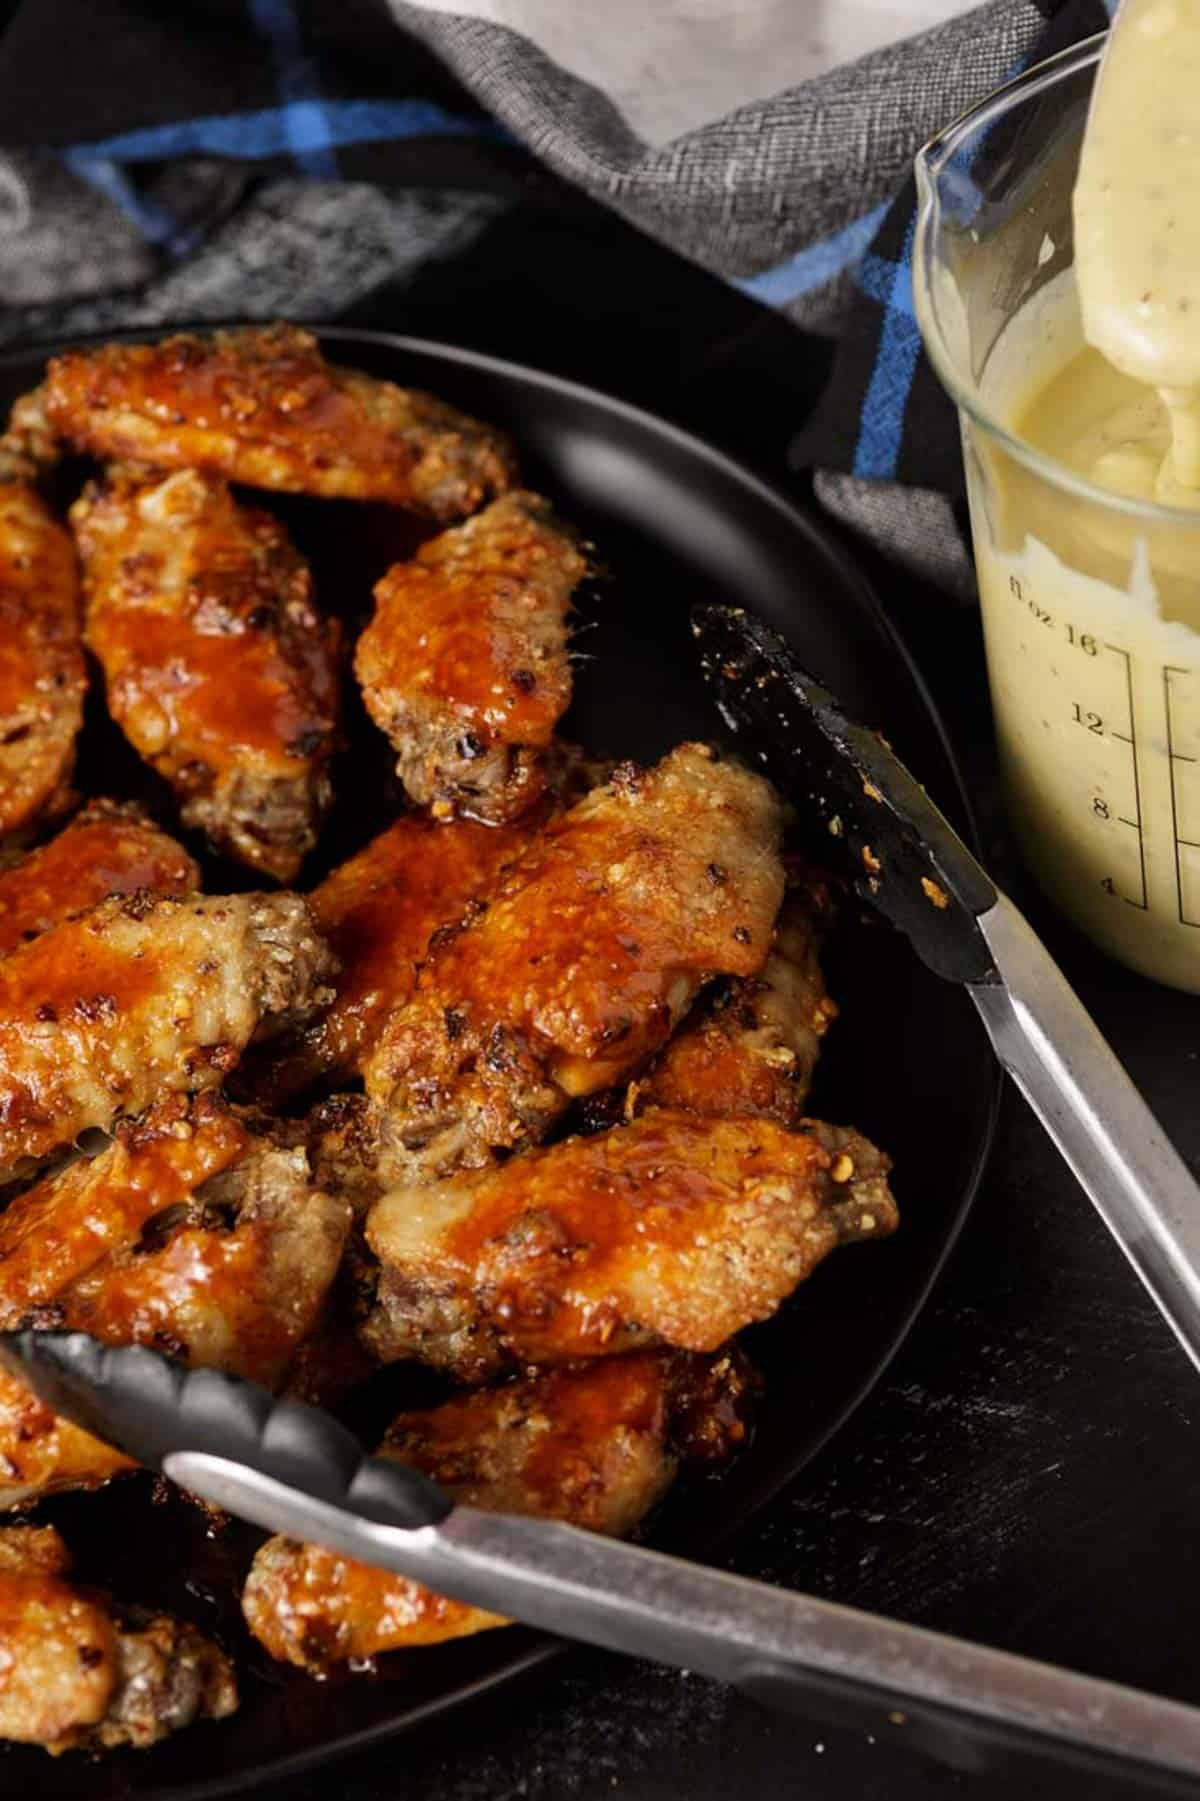 Baked chicken wings with buffalo sauce.